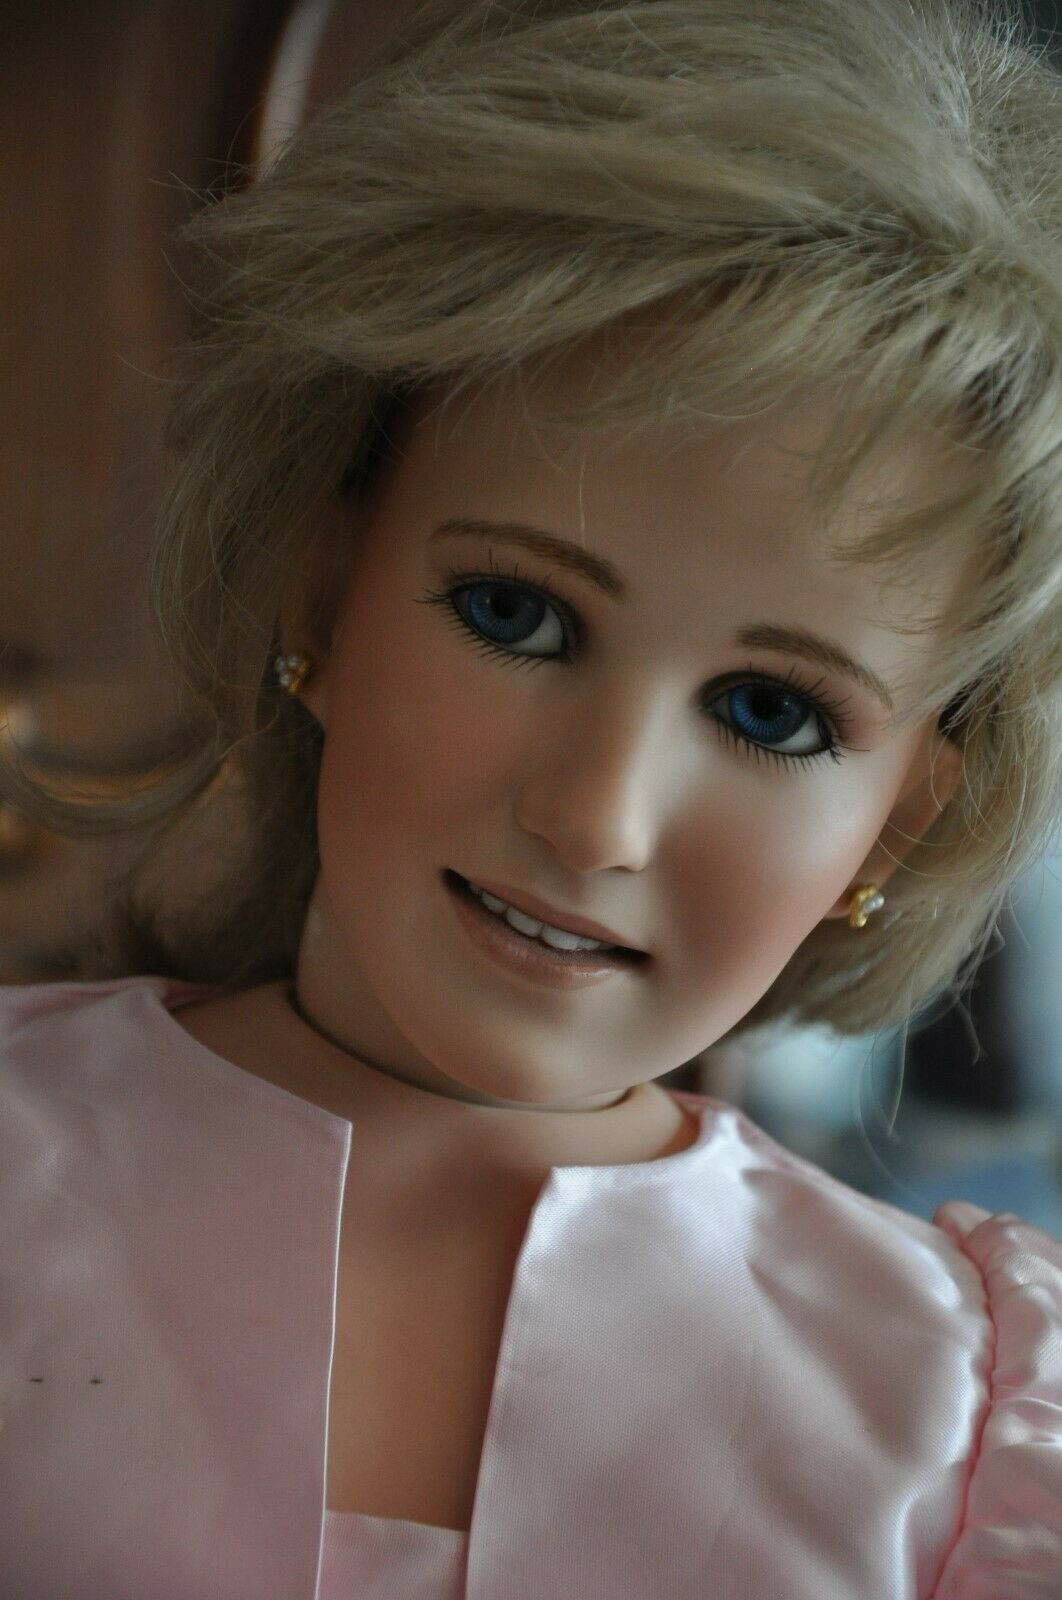 Porcelain doll Princess Diana by mujer RuBert